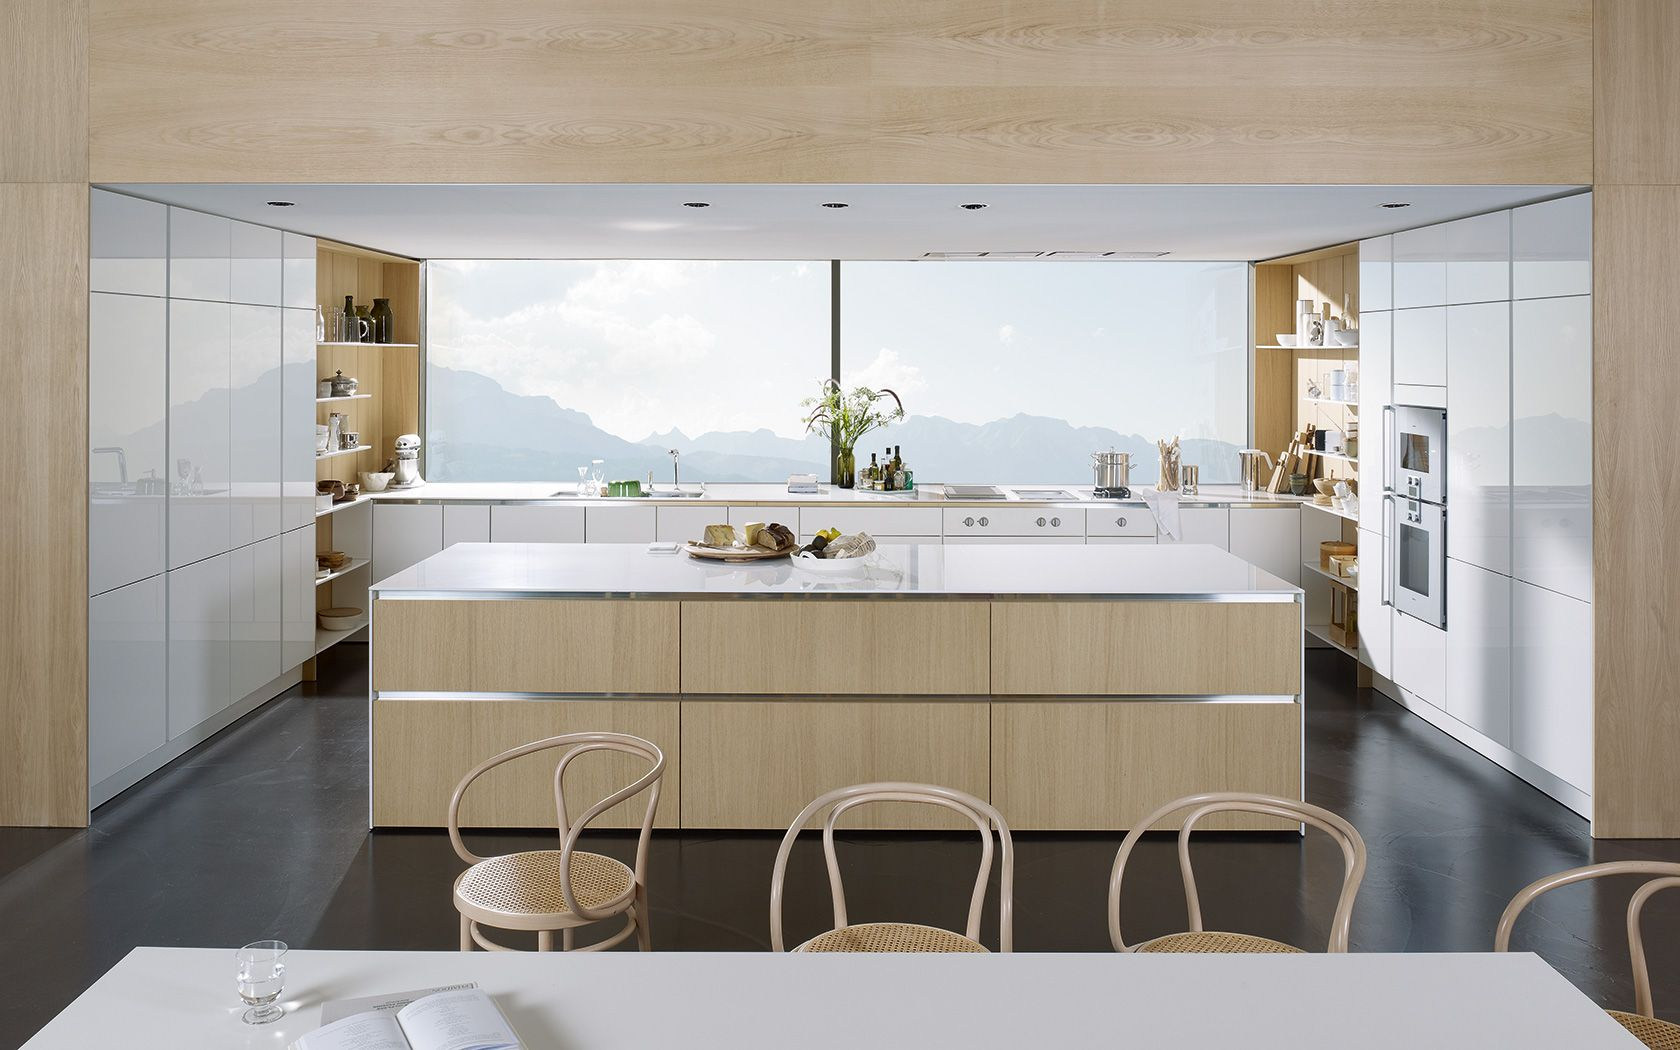 1000  images about koolschijn siematic smart design on pinterest ...